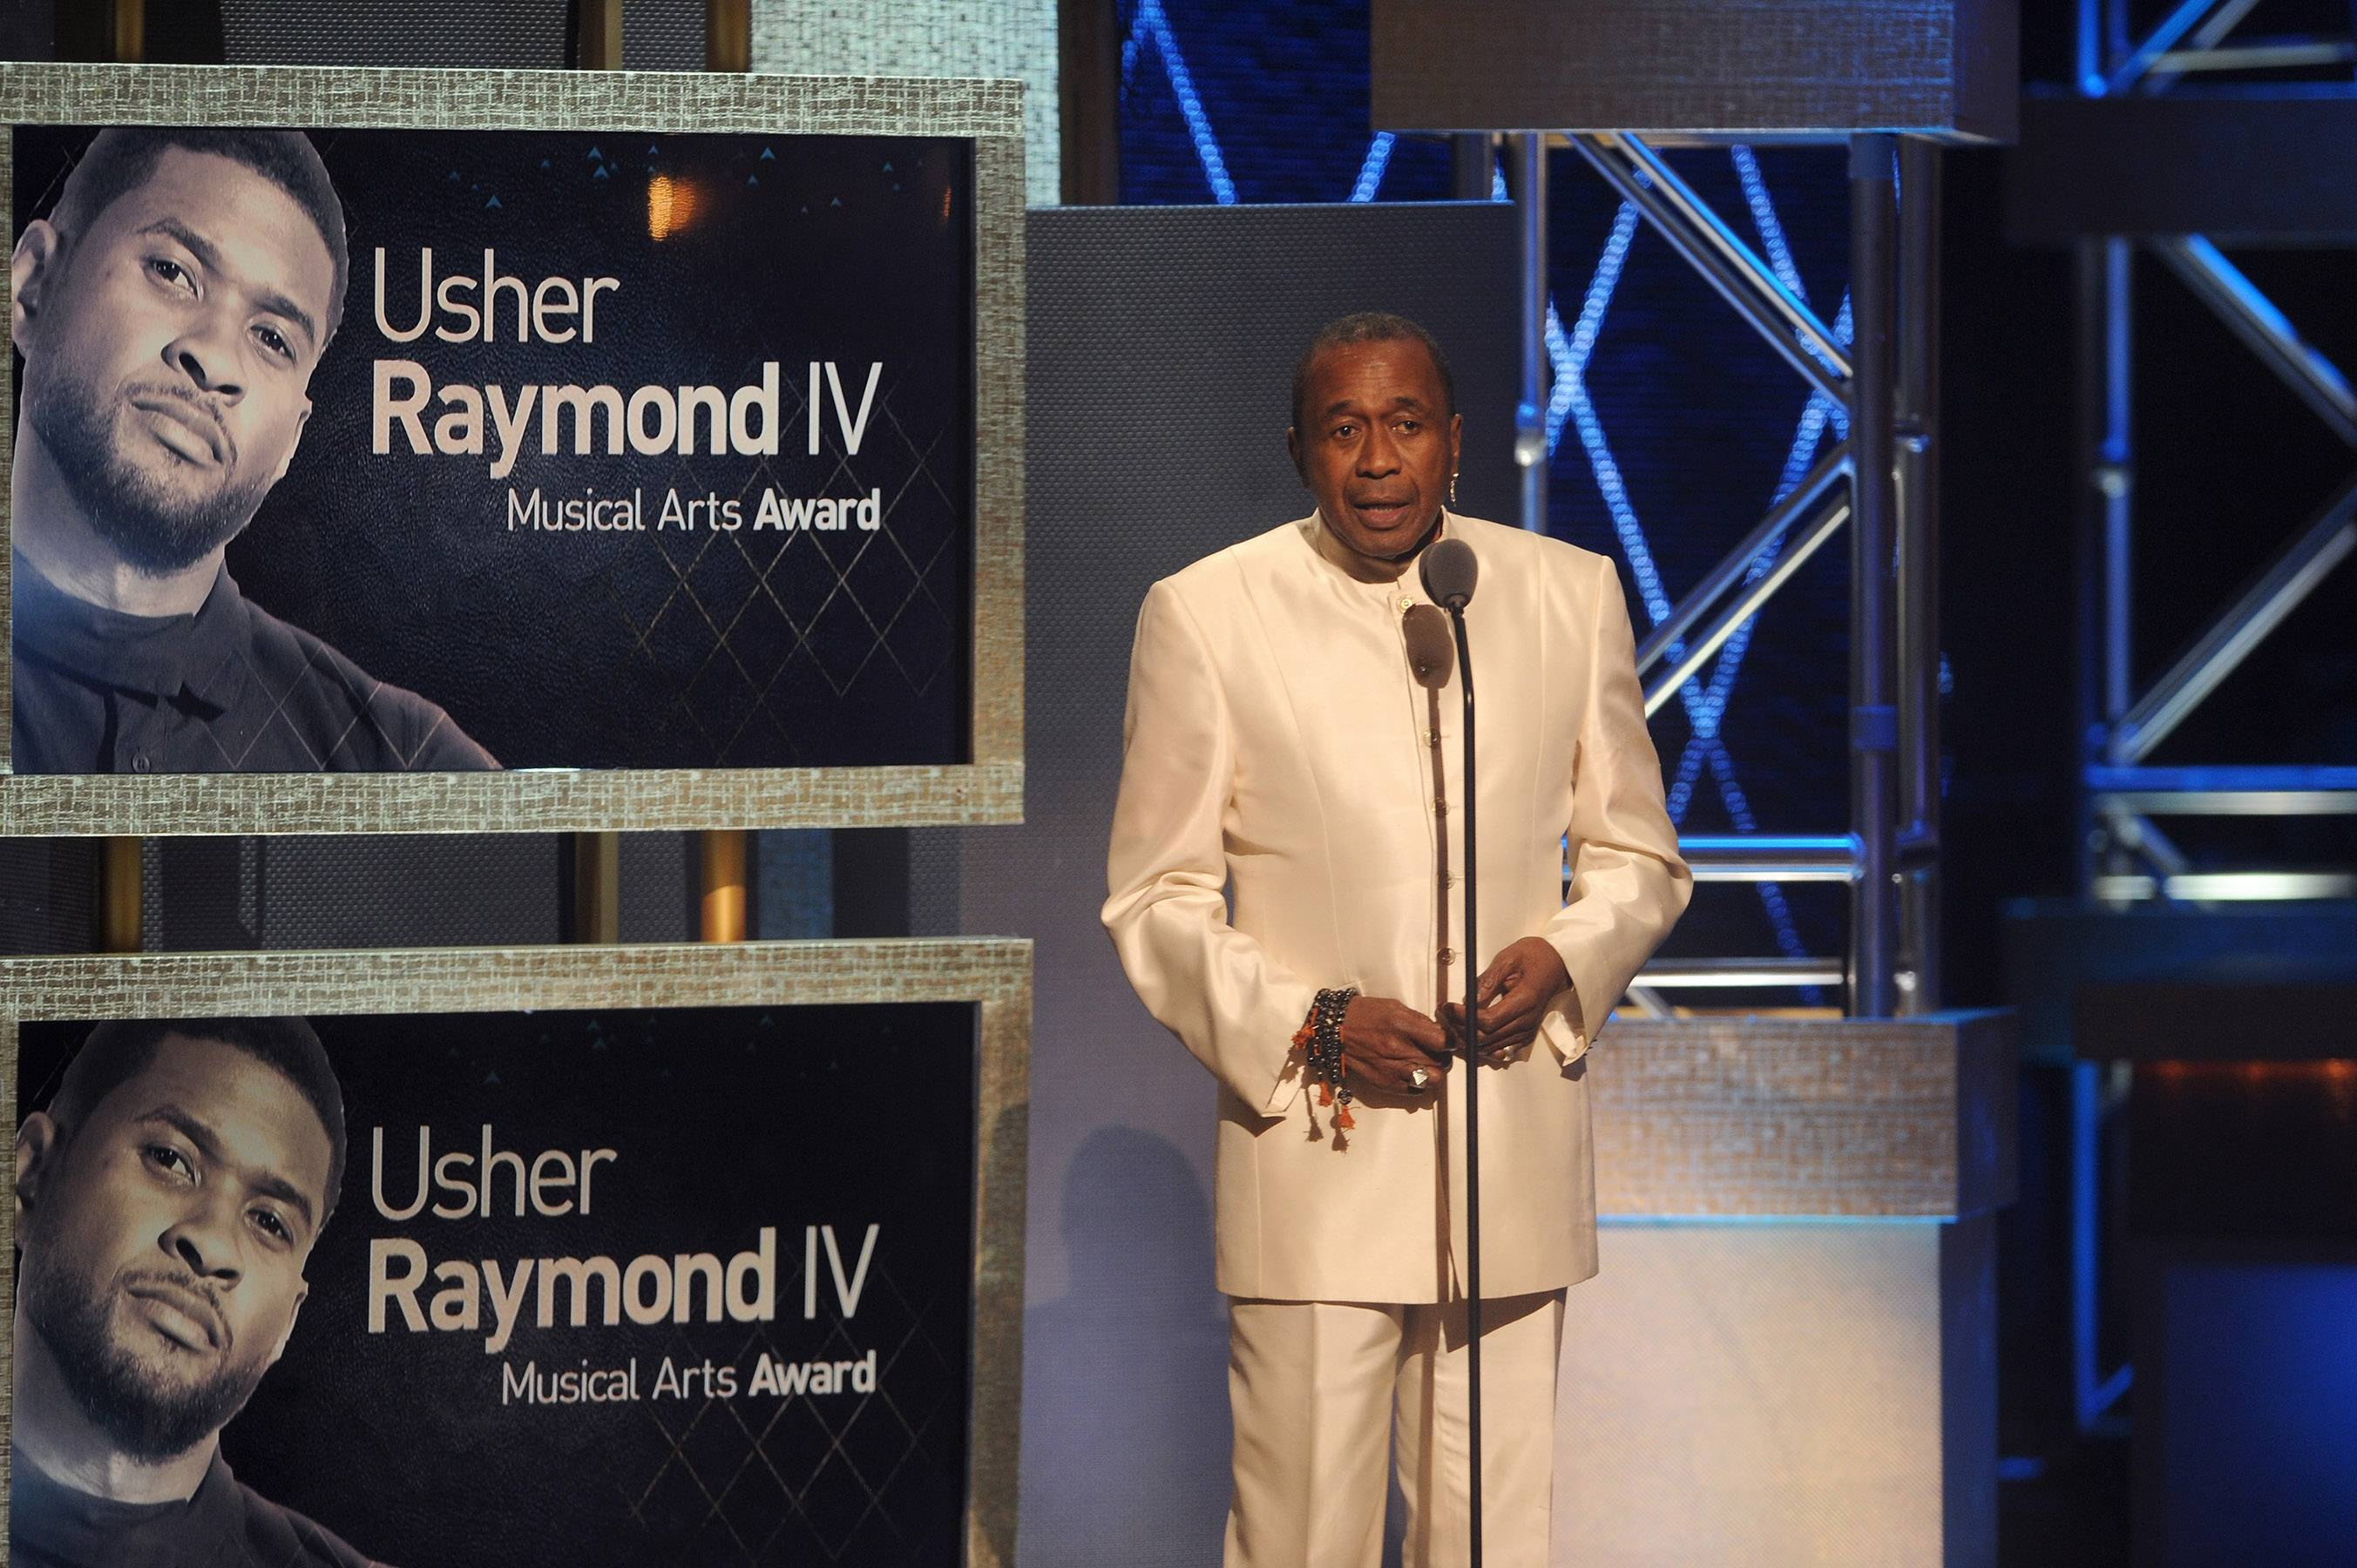 Recognizing Talent  - Actor Ben Vereen recognizes his god son and The BET HonorsMusical Arts Award honoreeUsher Raymond IV. Vereen explains how proud he is of his success and progress as an artist and philanthropist. (Photo: Brad Barket/BET/Getty Images for BET)